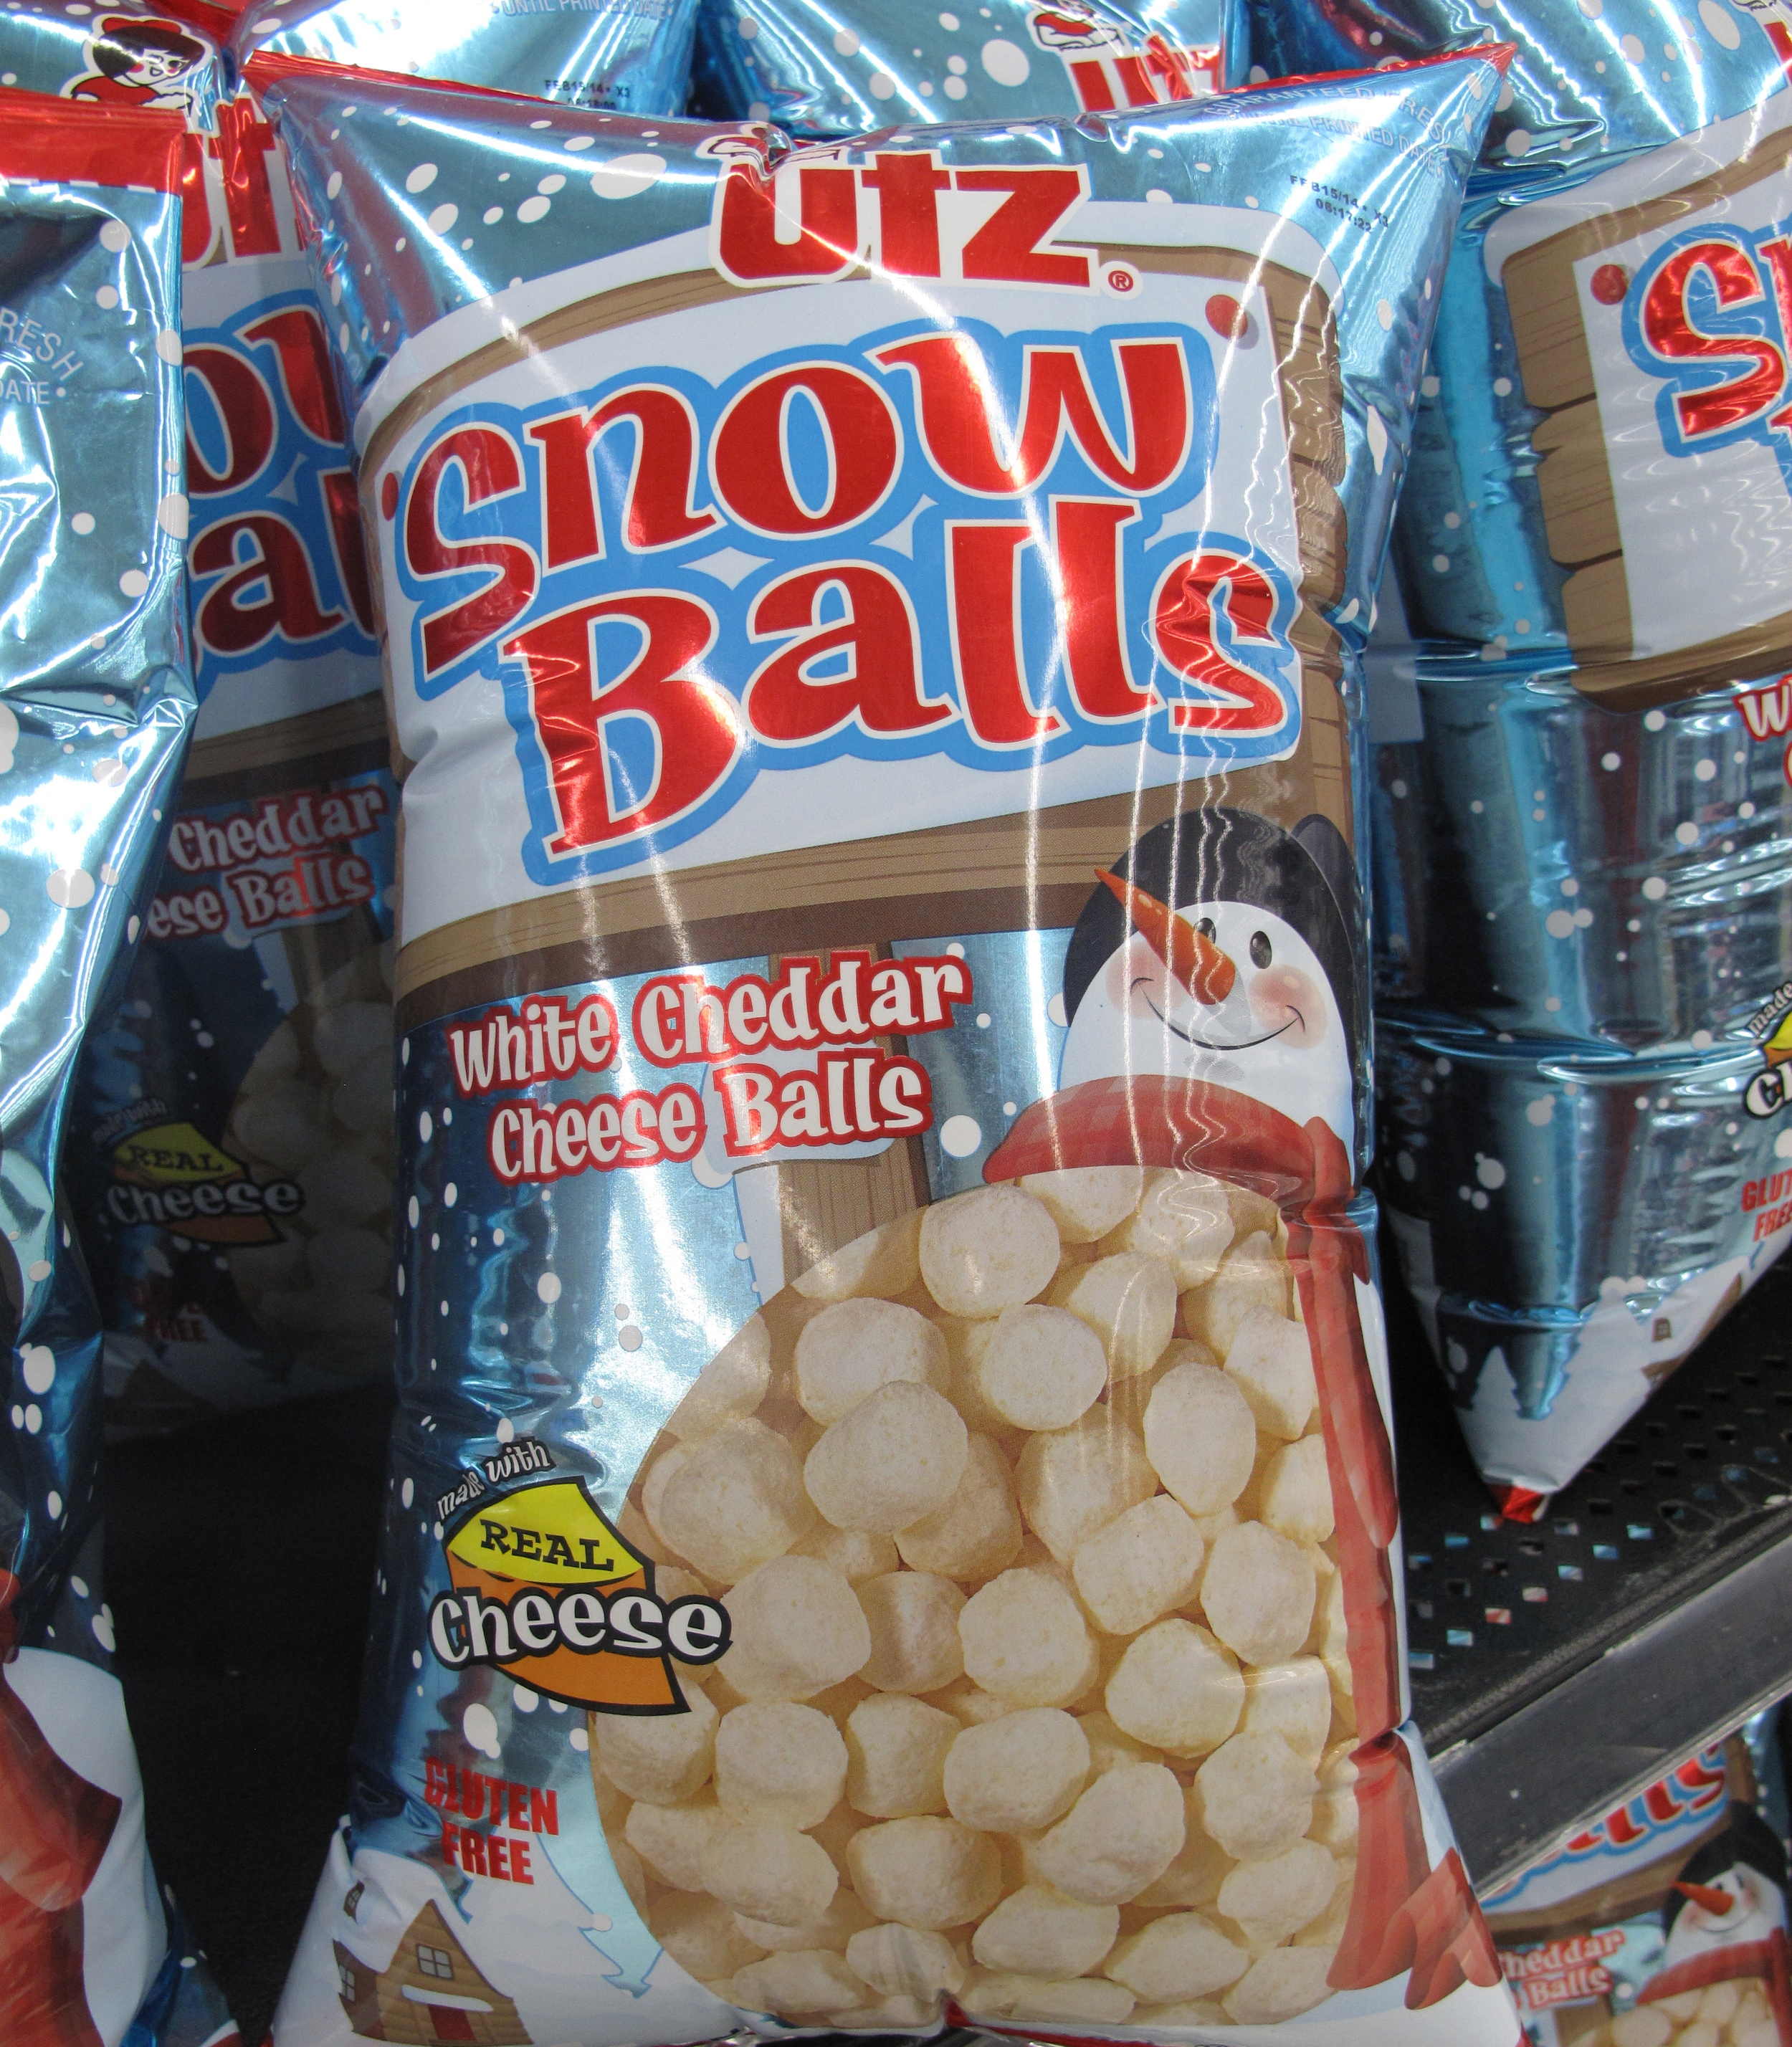 White Cheddar Cheese snow balls